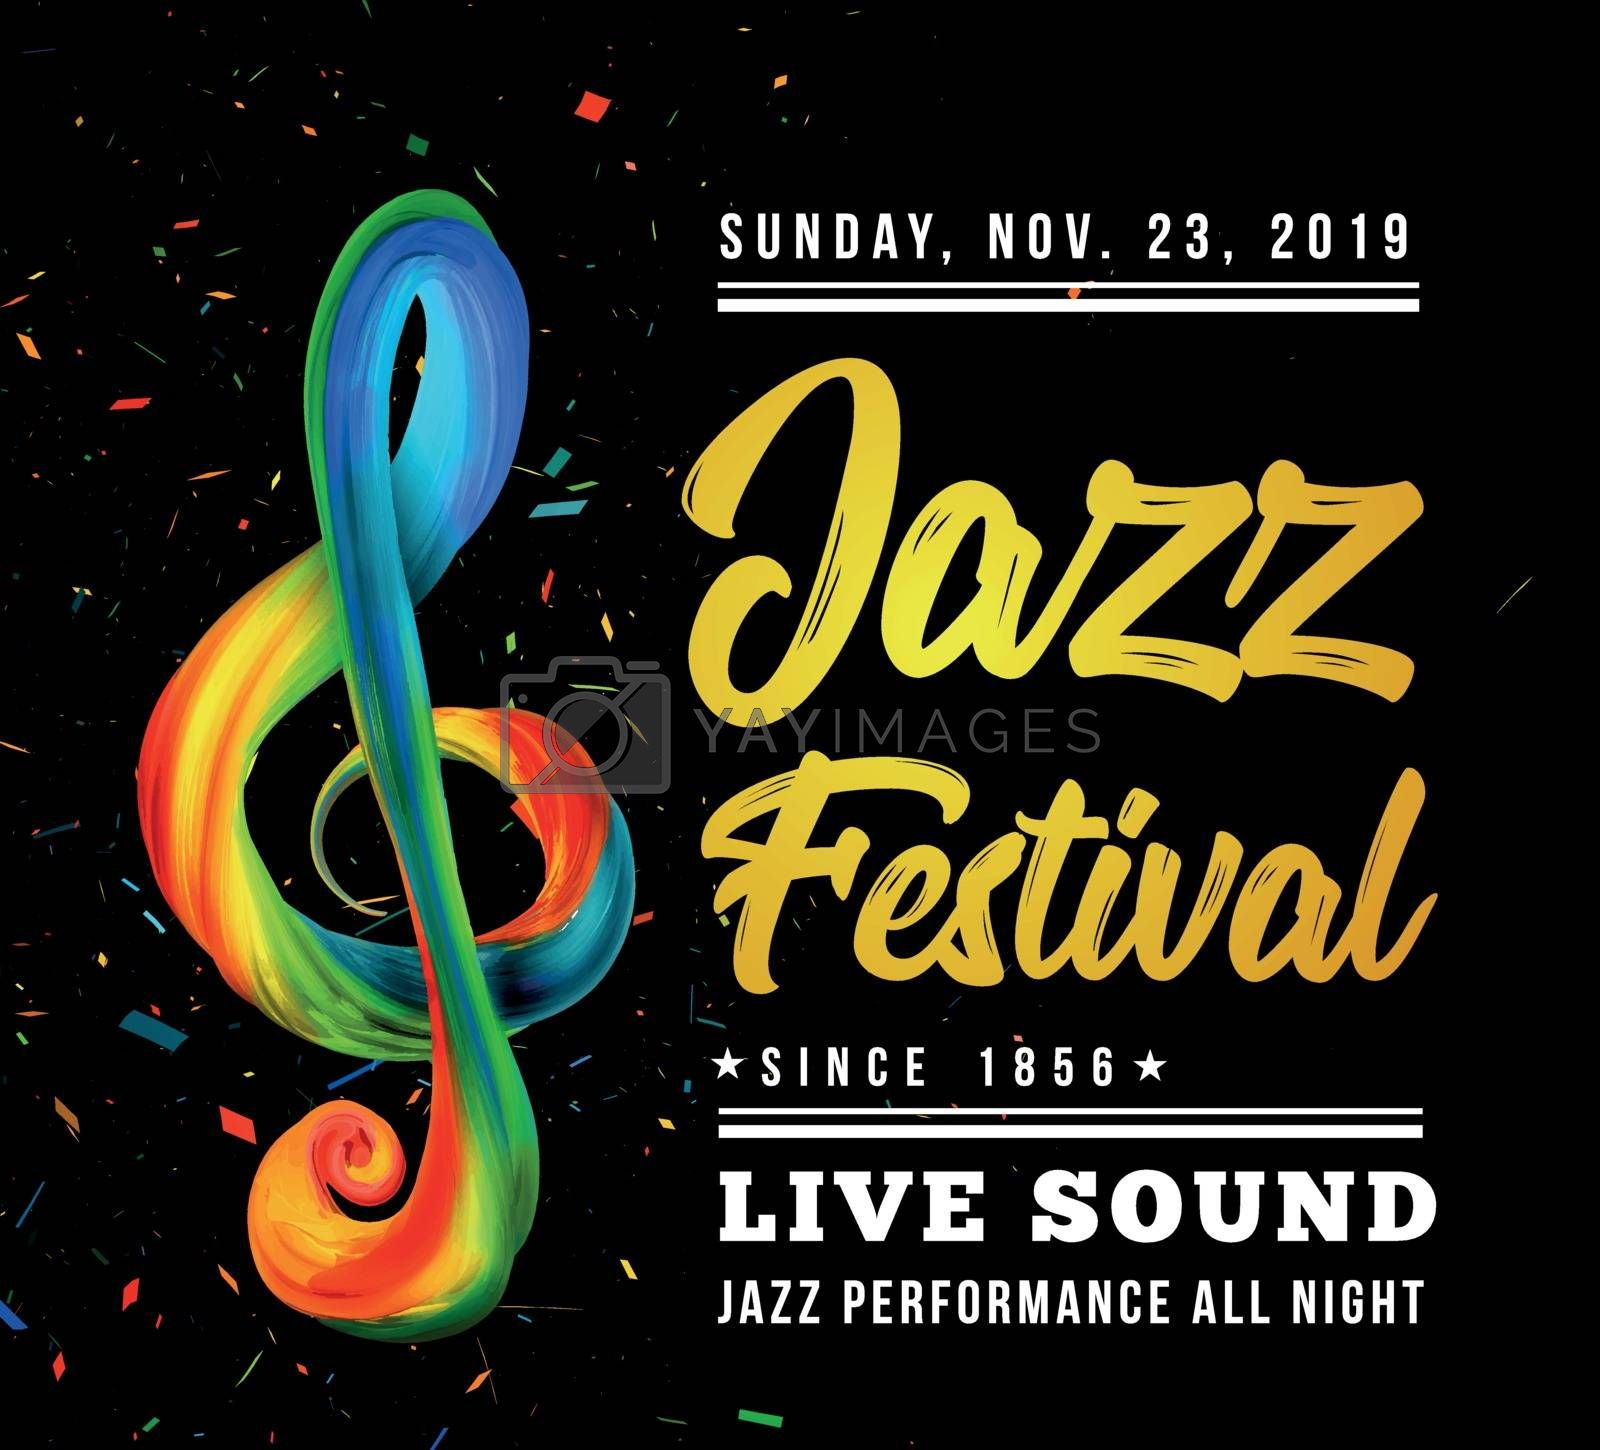 Jazz festival poster template with a treble clef and text on a black background. Vector illustration